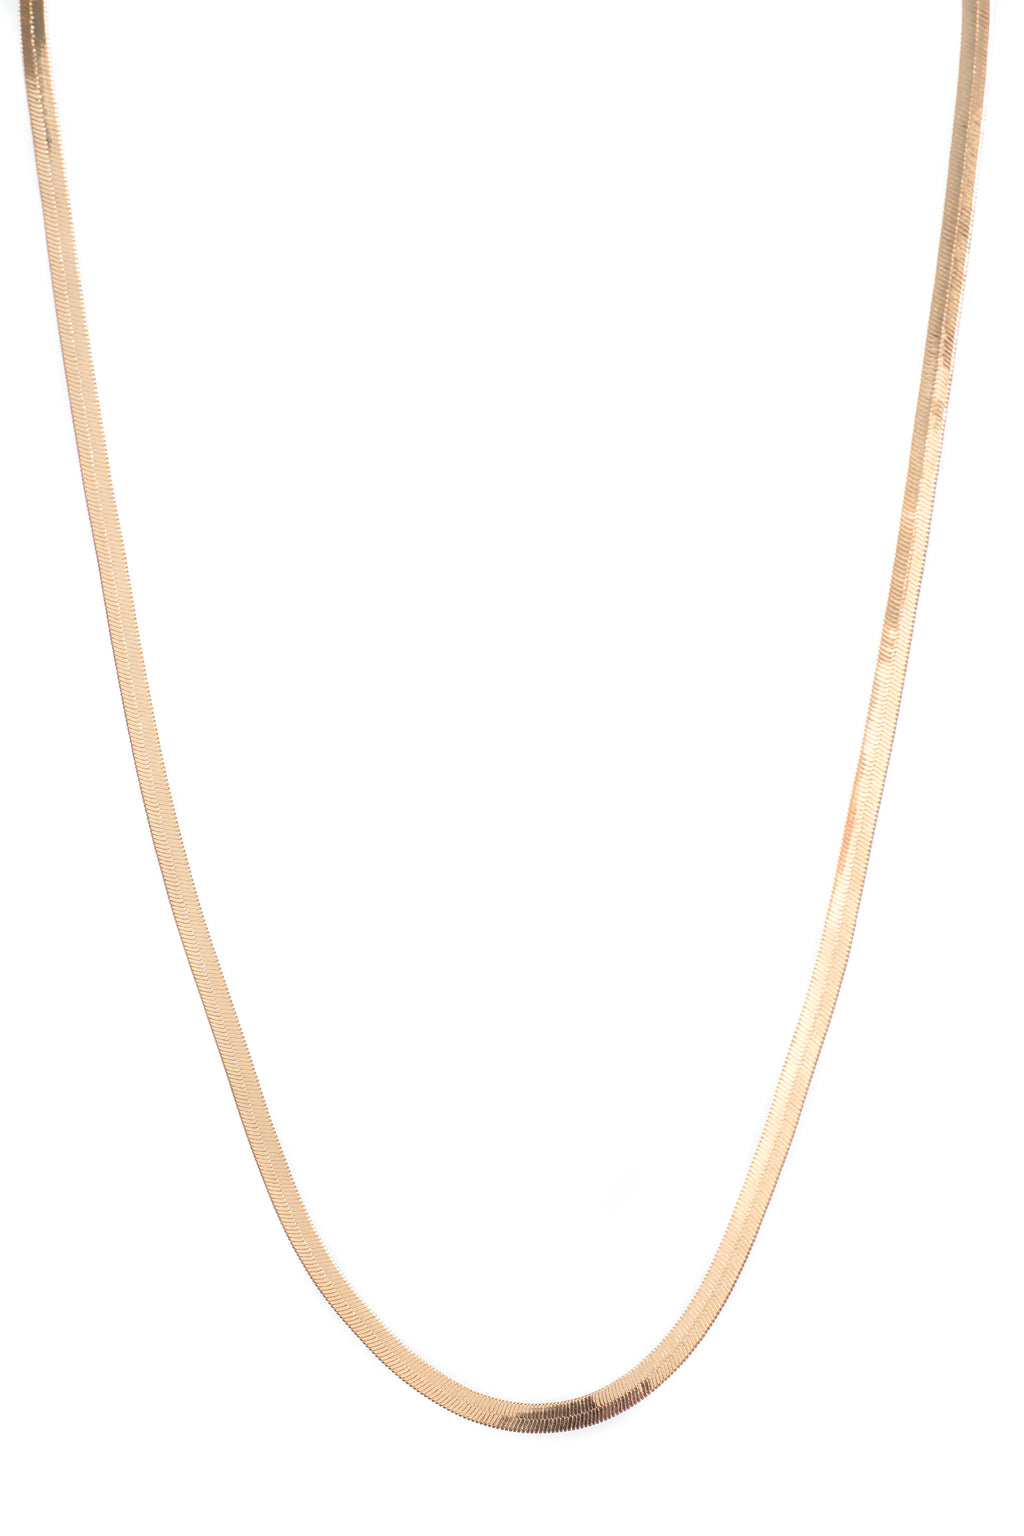 Necklace, Gold, Herringbone, FW20